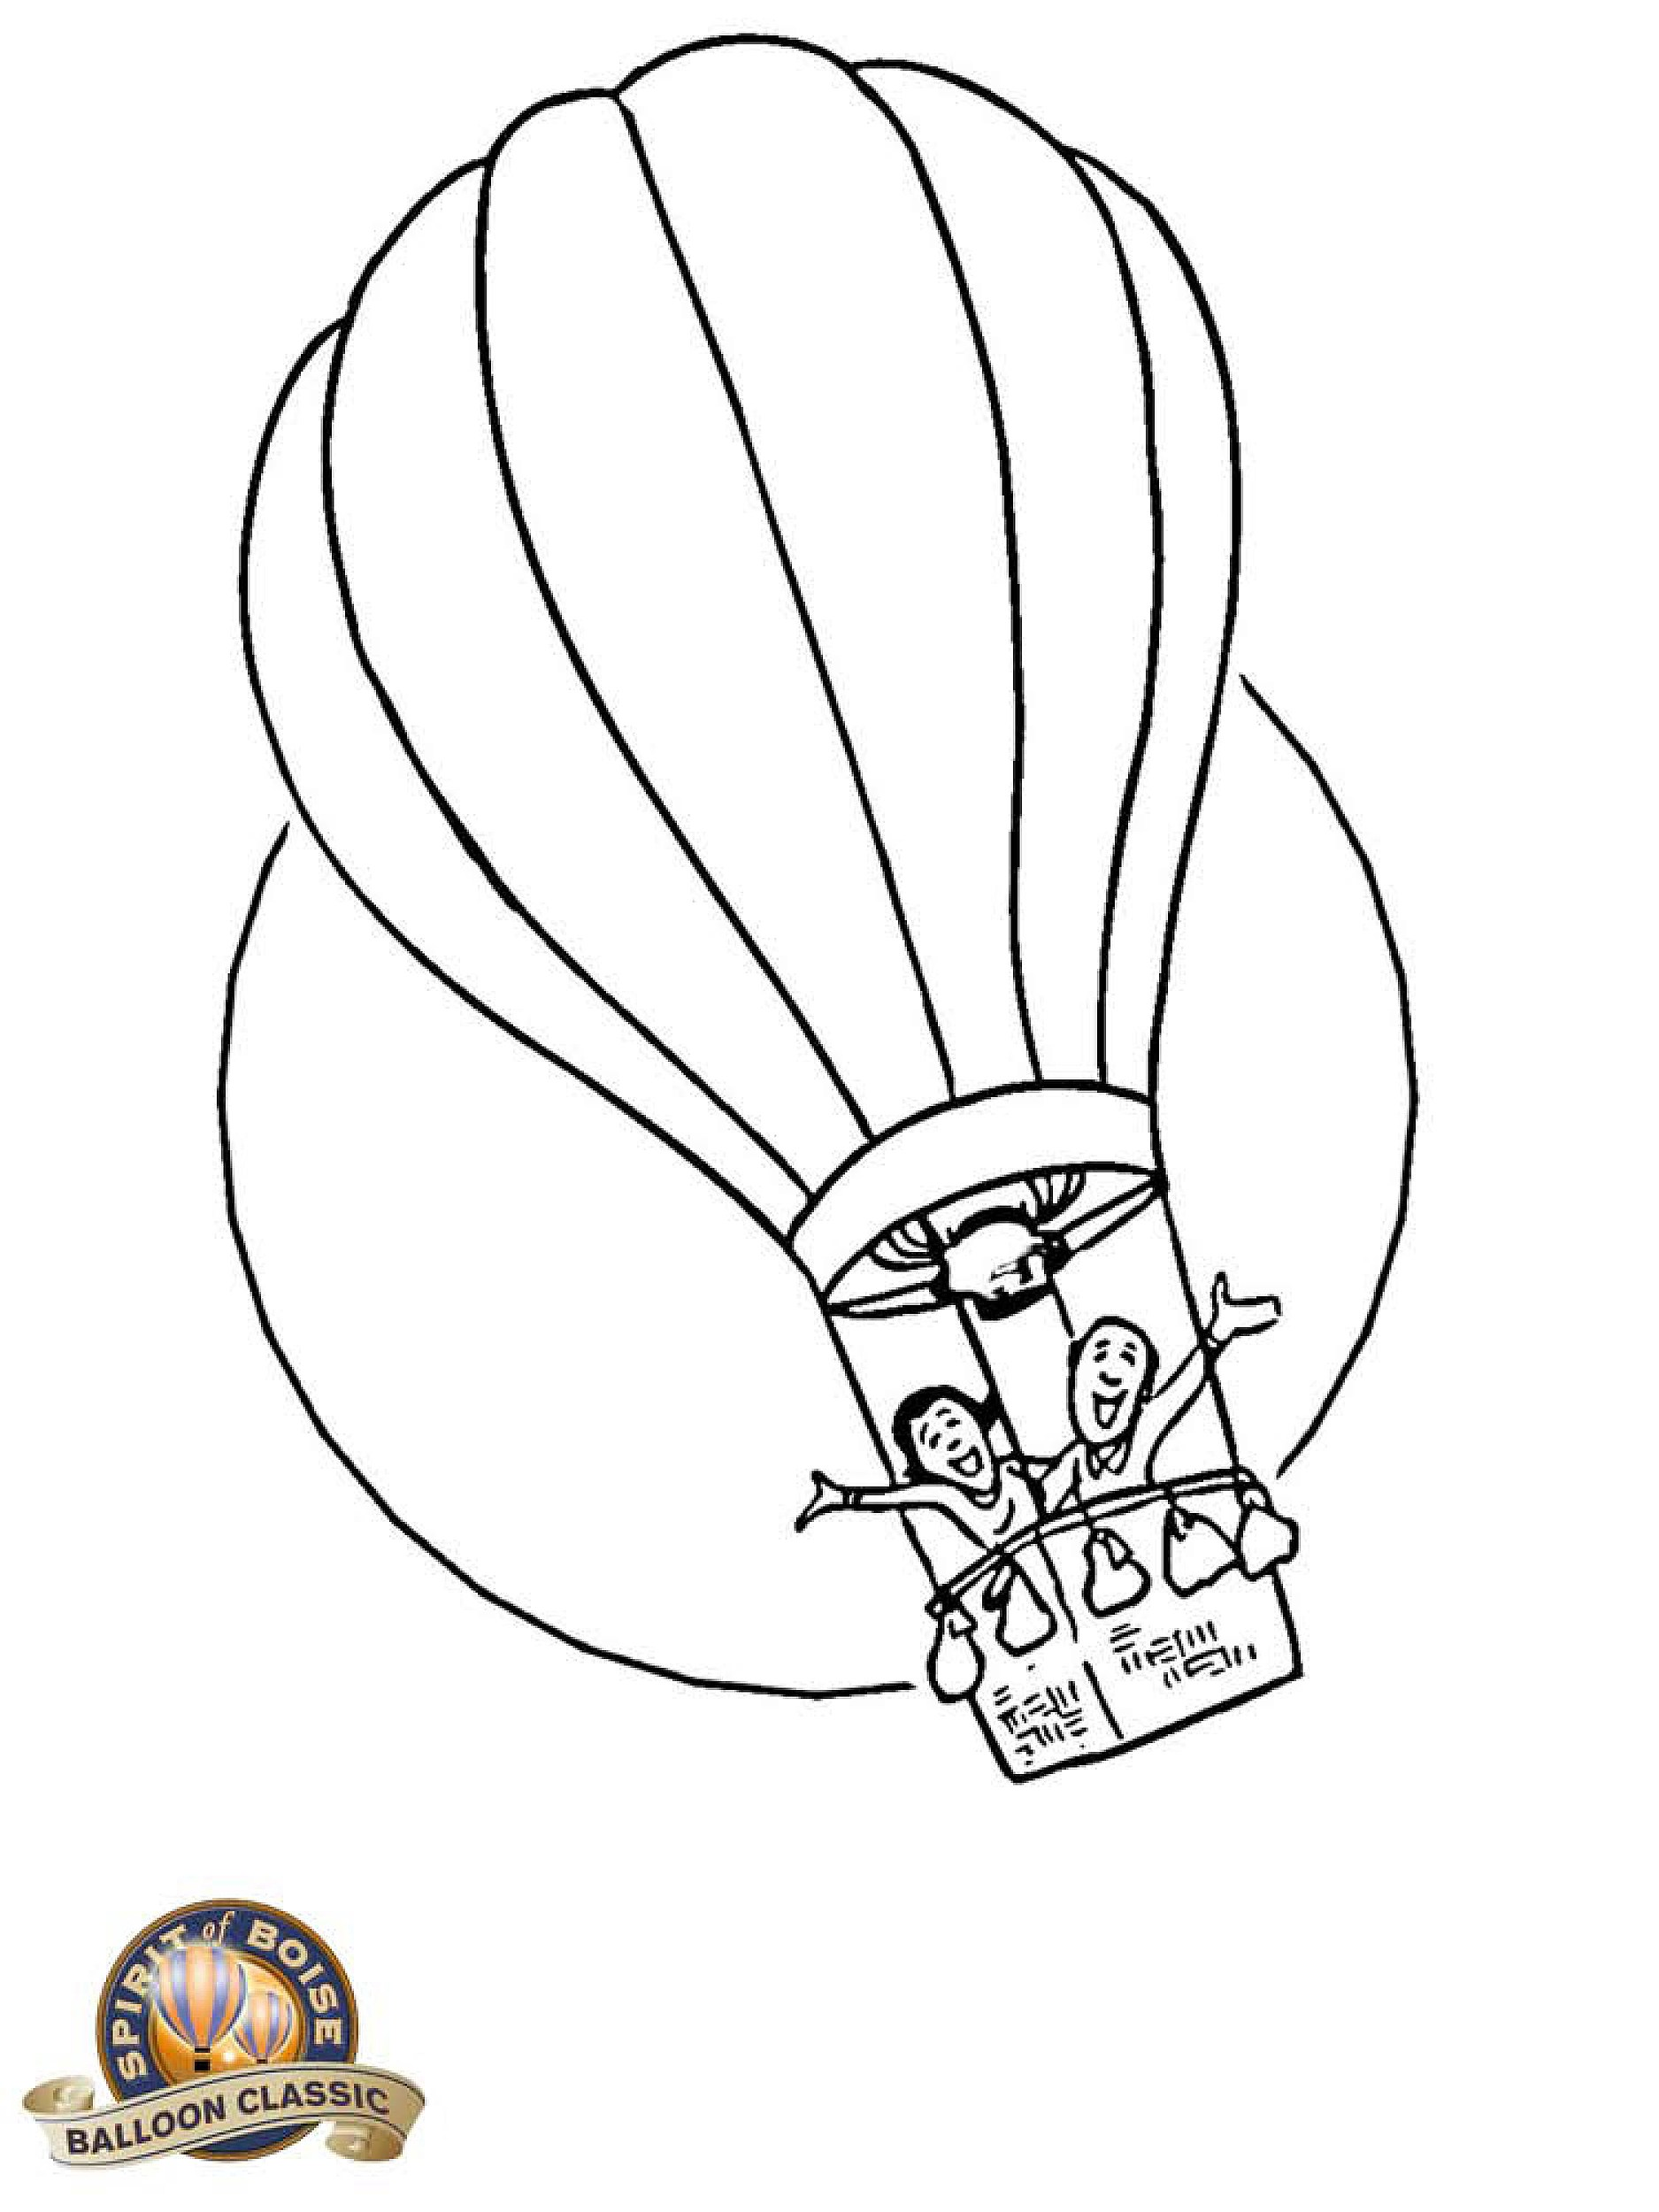 1875x2500 Hot Air Balloon Coloring Pages Spirit Of Boise Balloon Classic